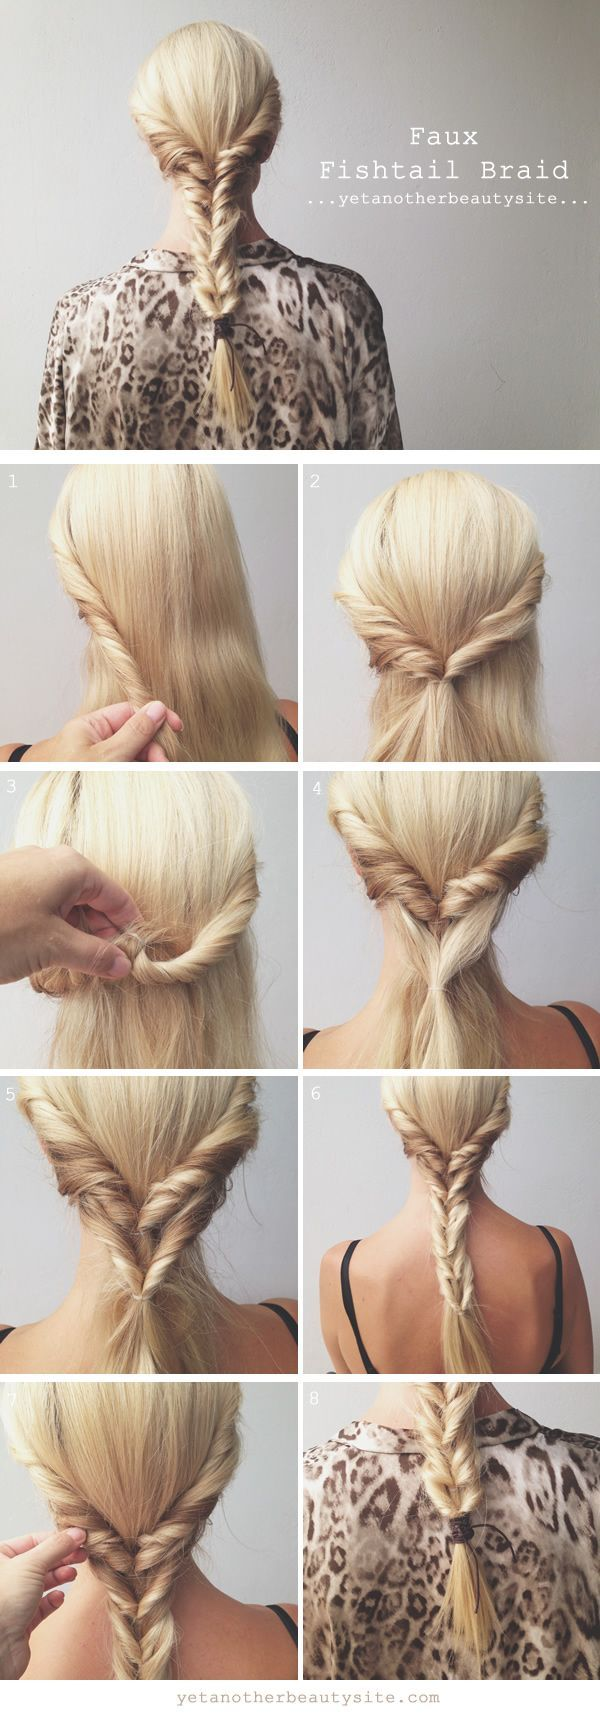 Remarkable 17 Creative Braid Hairstyles You Should Not Miss Pretty Designs Hairstyles For Women Draintrainus